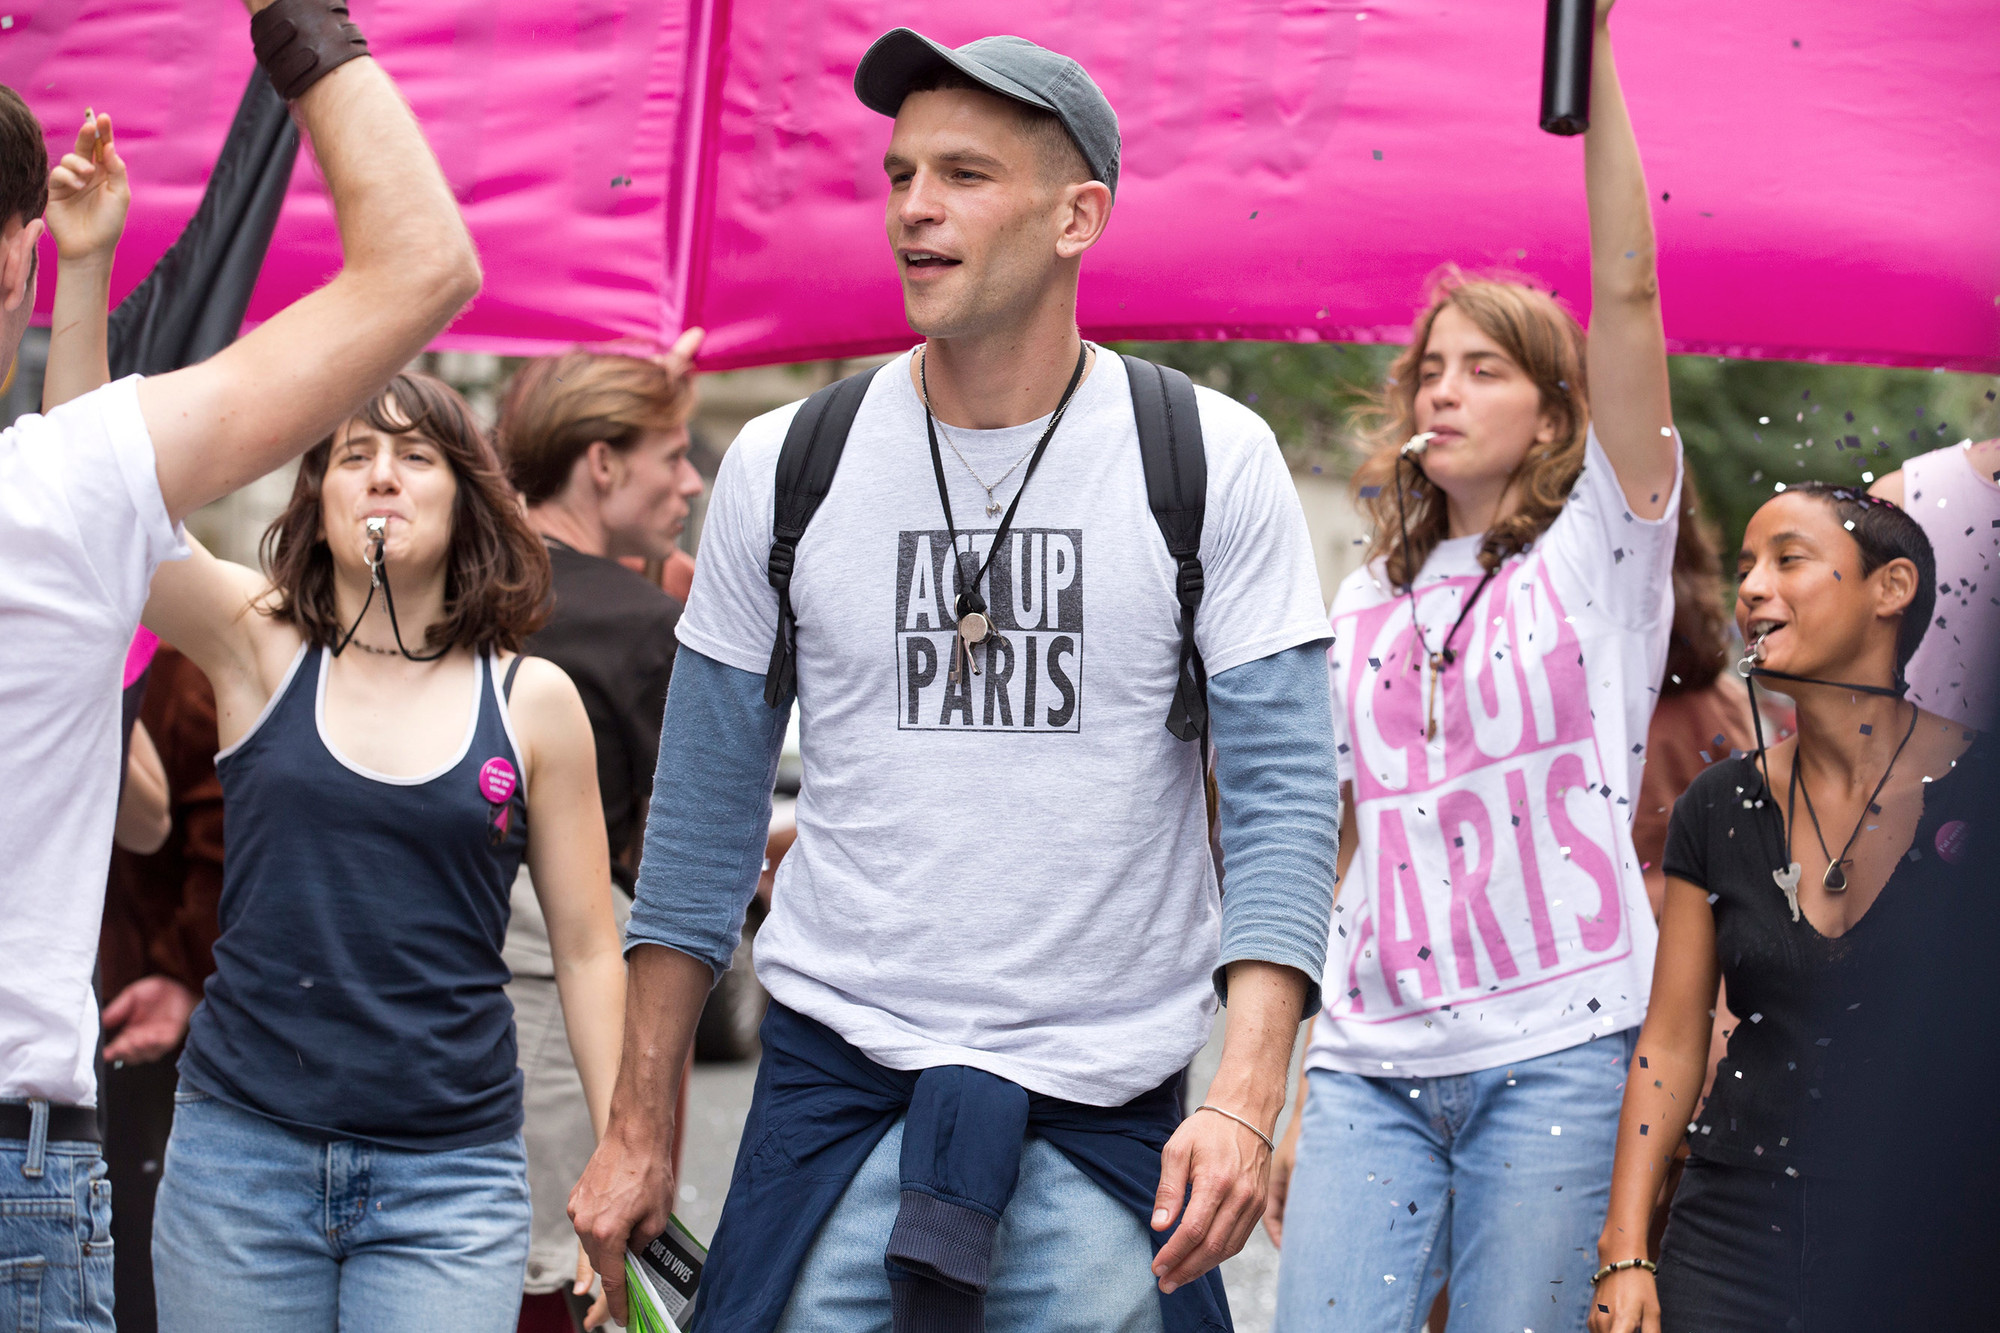 BPM (Beats Per Minute). 2017. France. Directed by Robin Campillo. Courtesy of The Orchard